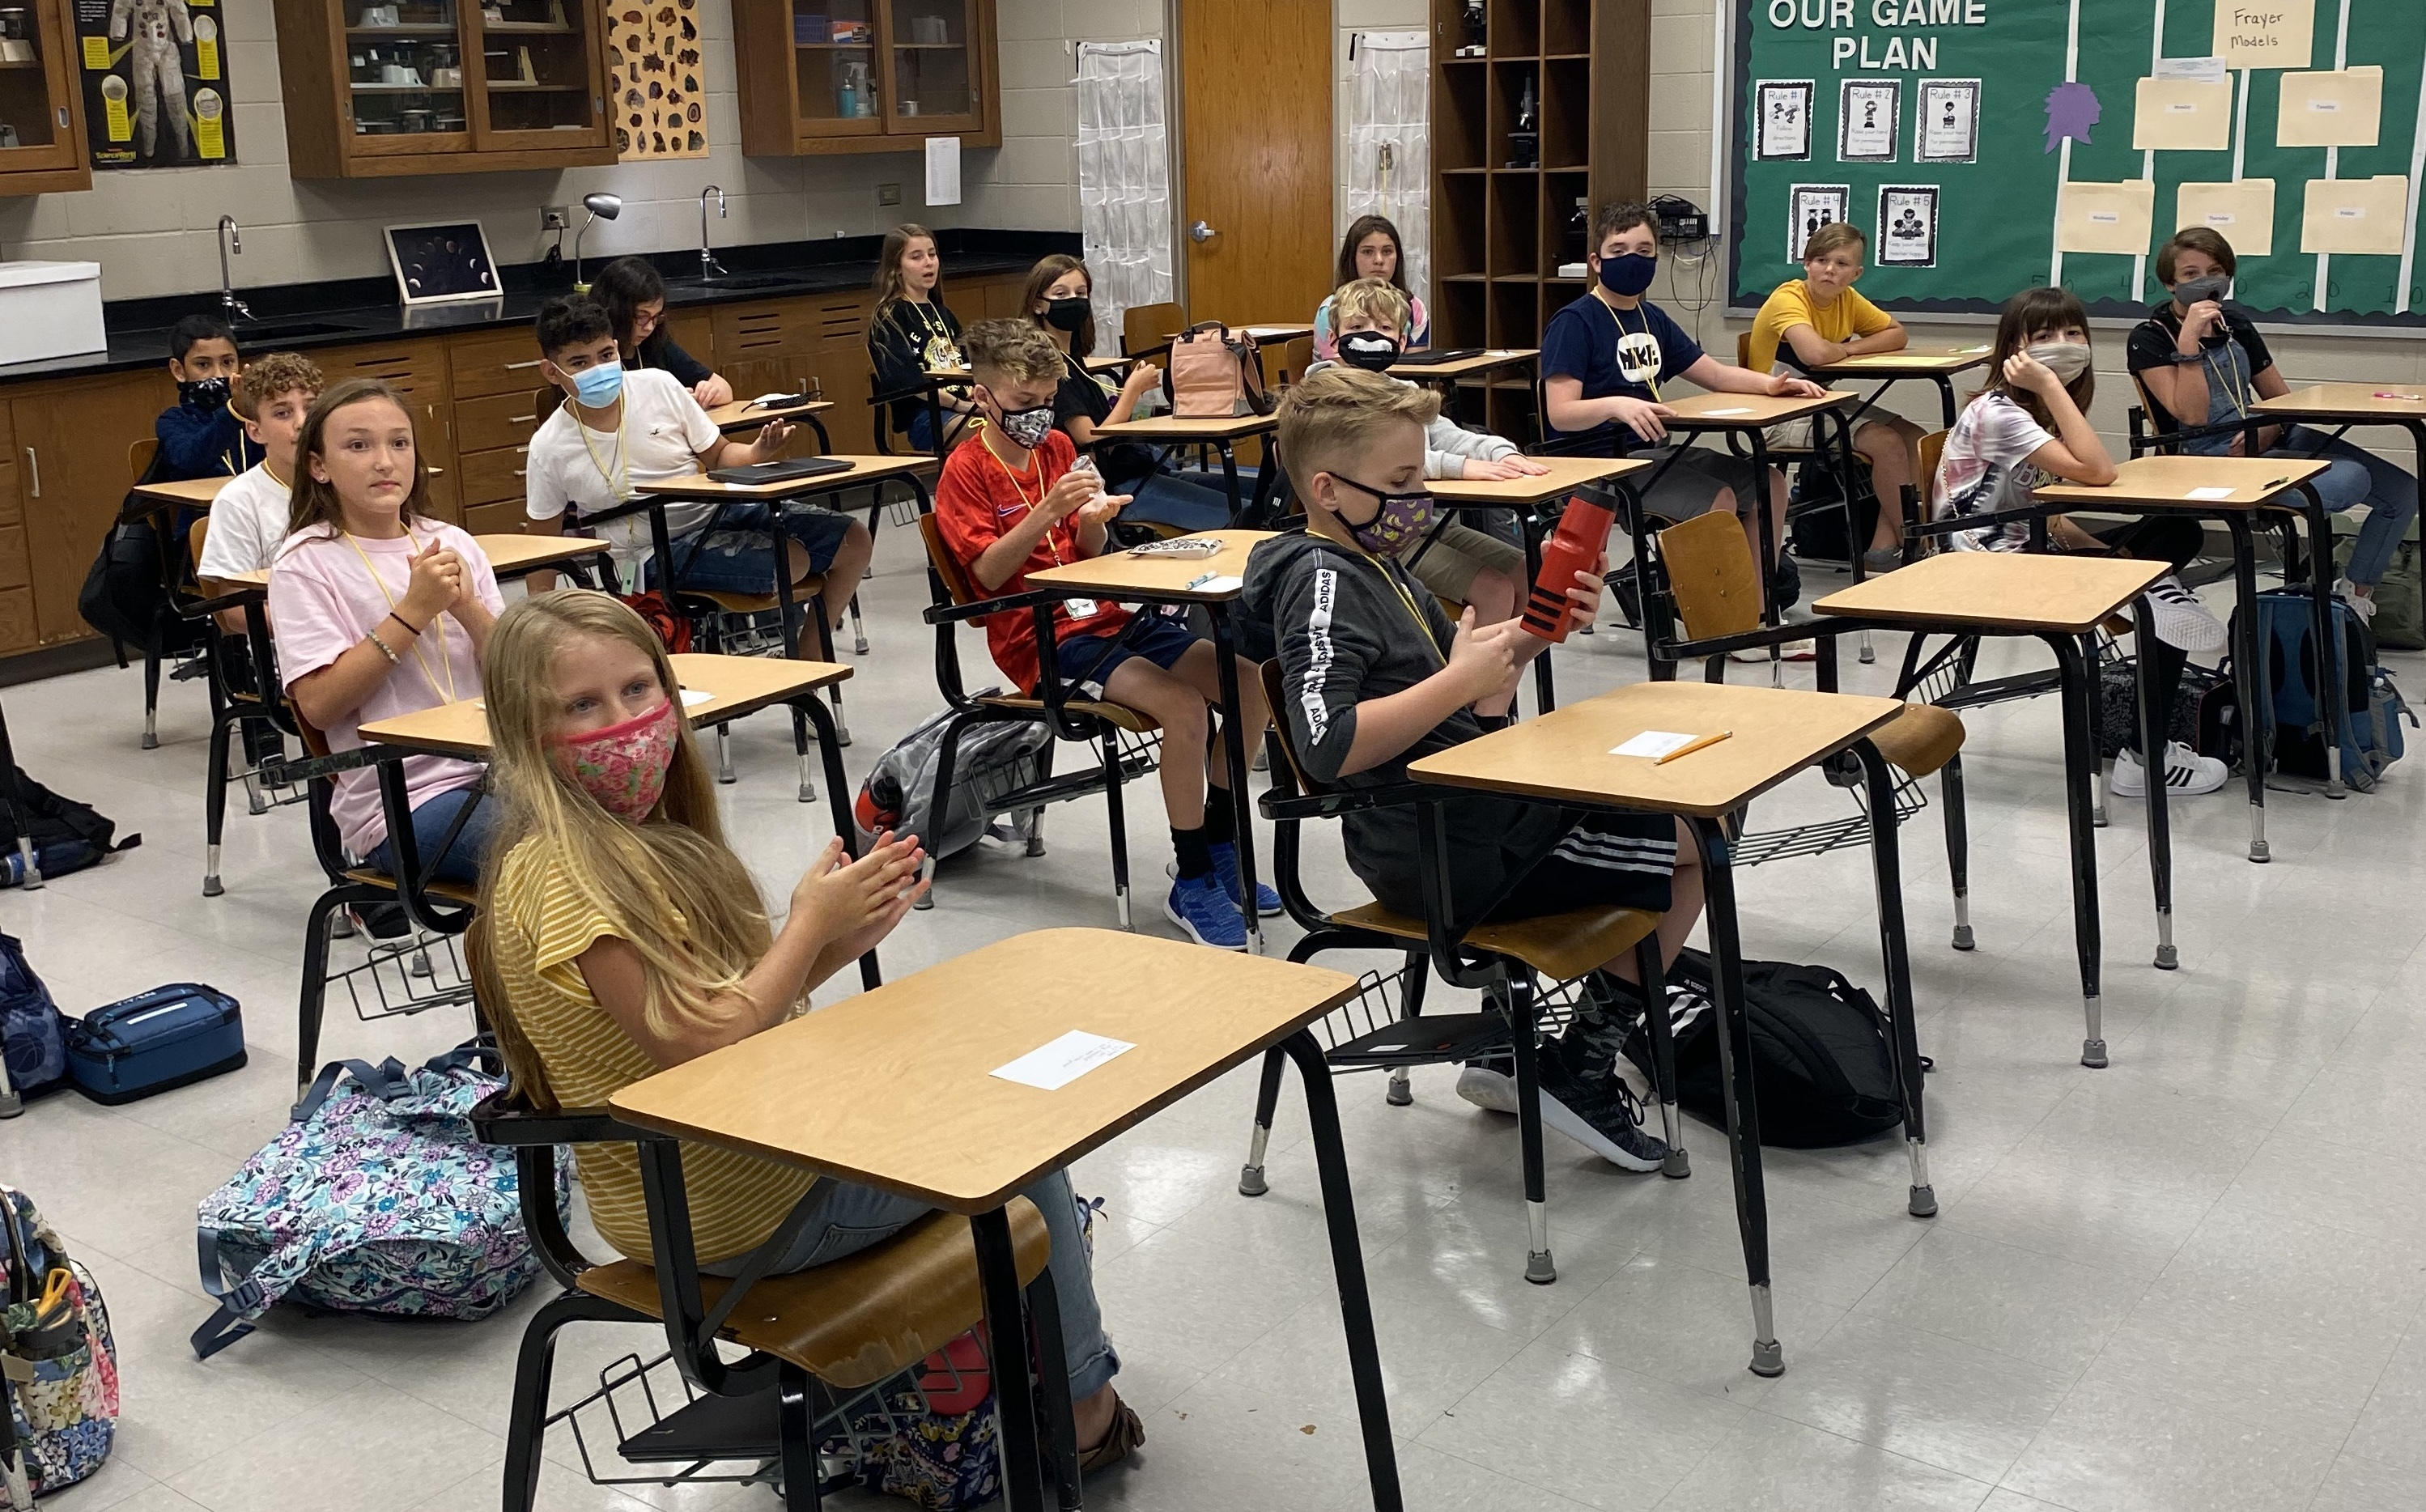 Wearing face coverings and social distancing is the new normal for educators and students in Lumpkin County Schools. #FocusedForward